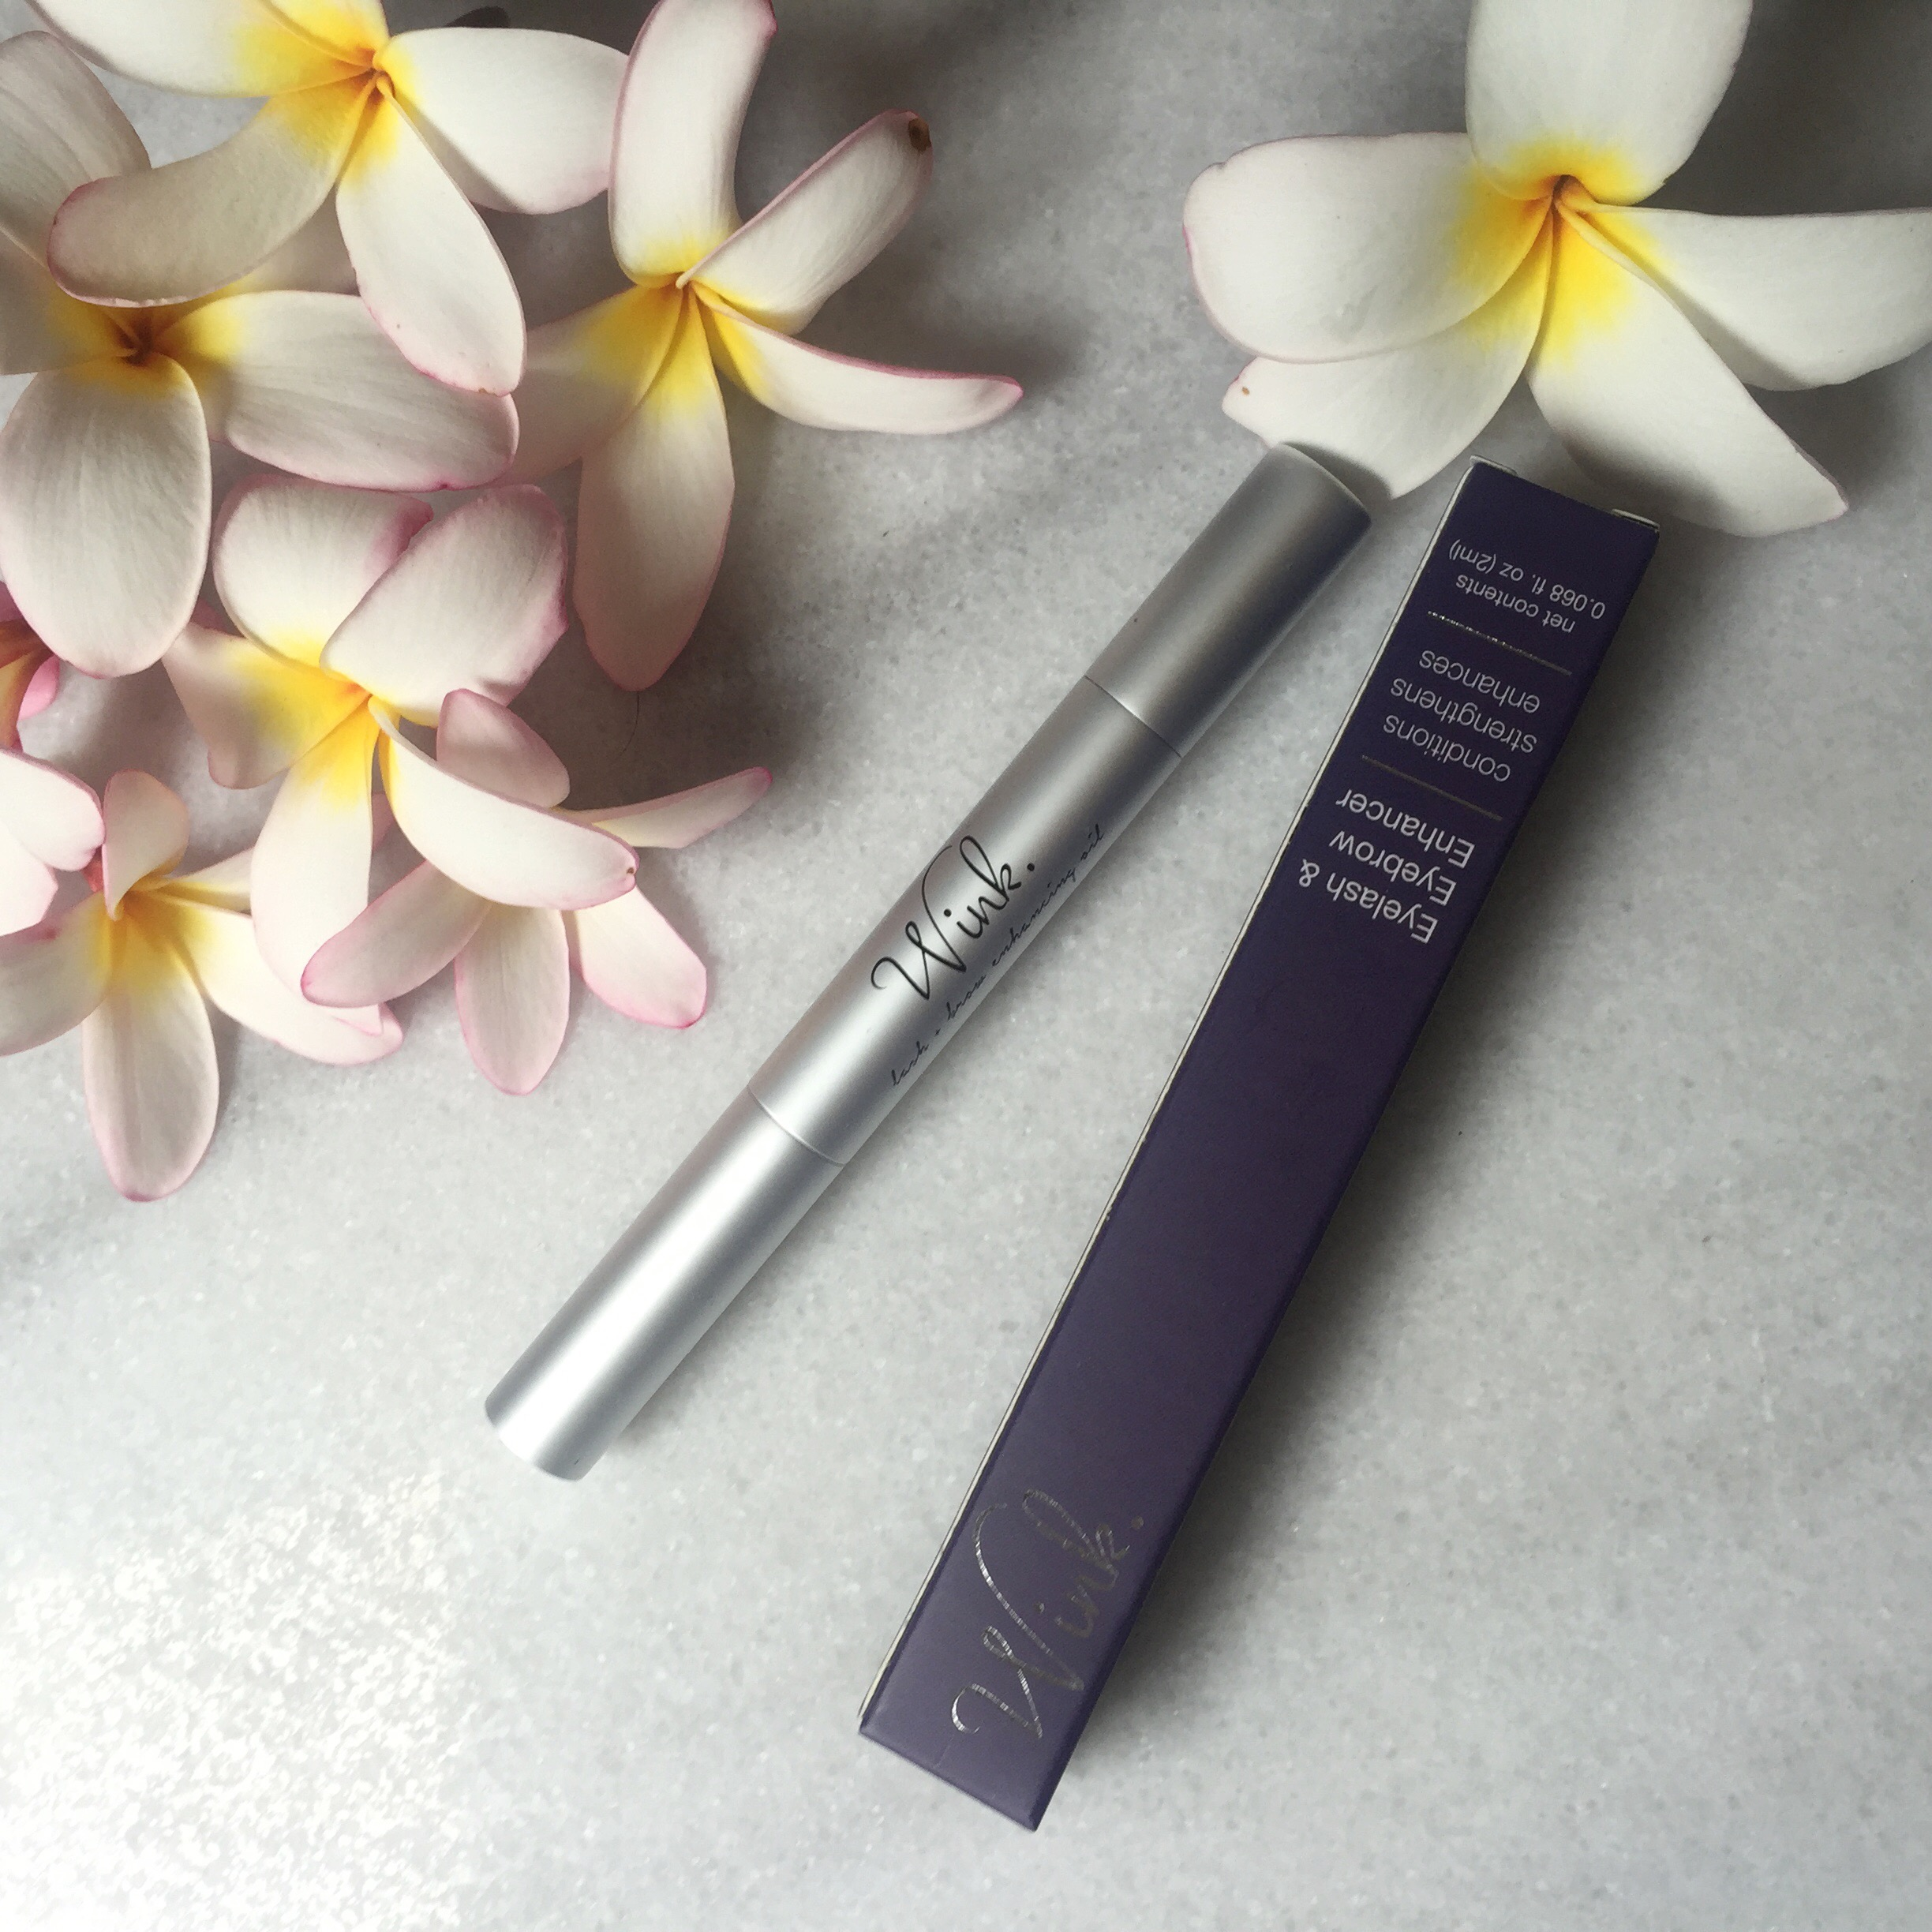 WINK organic lash and brow oil